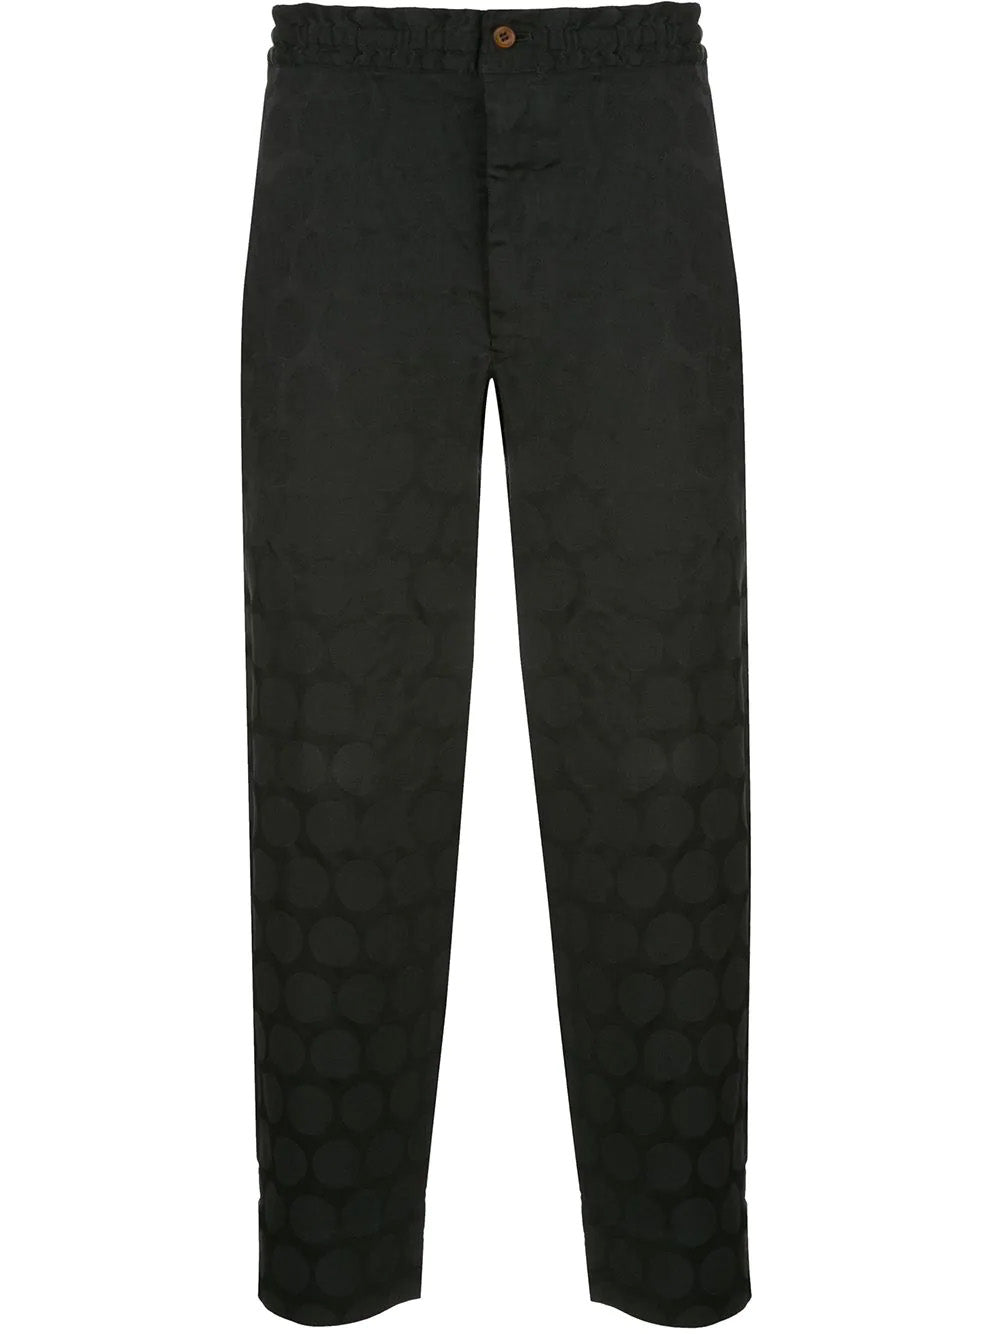 POLKA DOT PATTERN PANTS